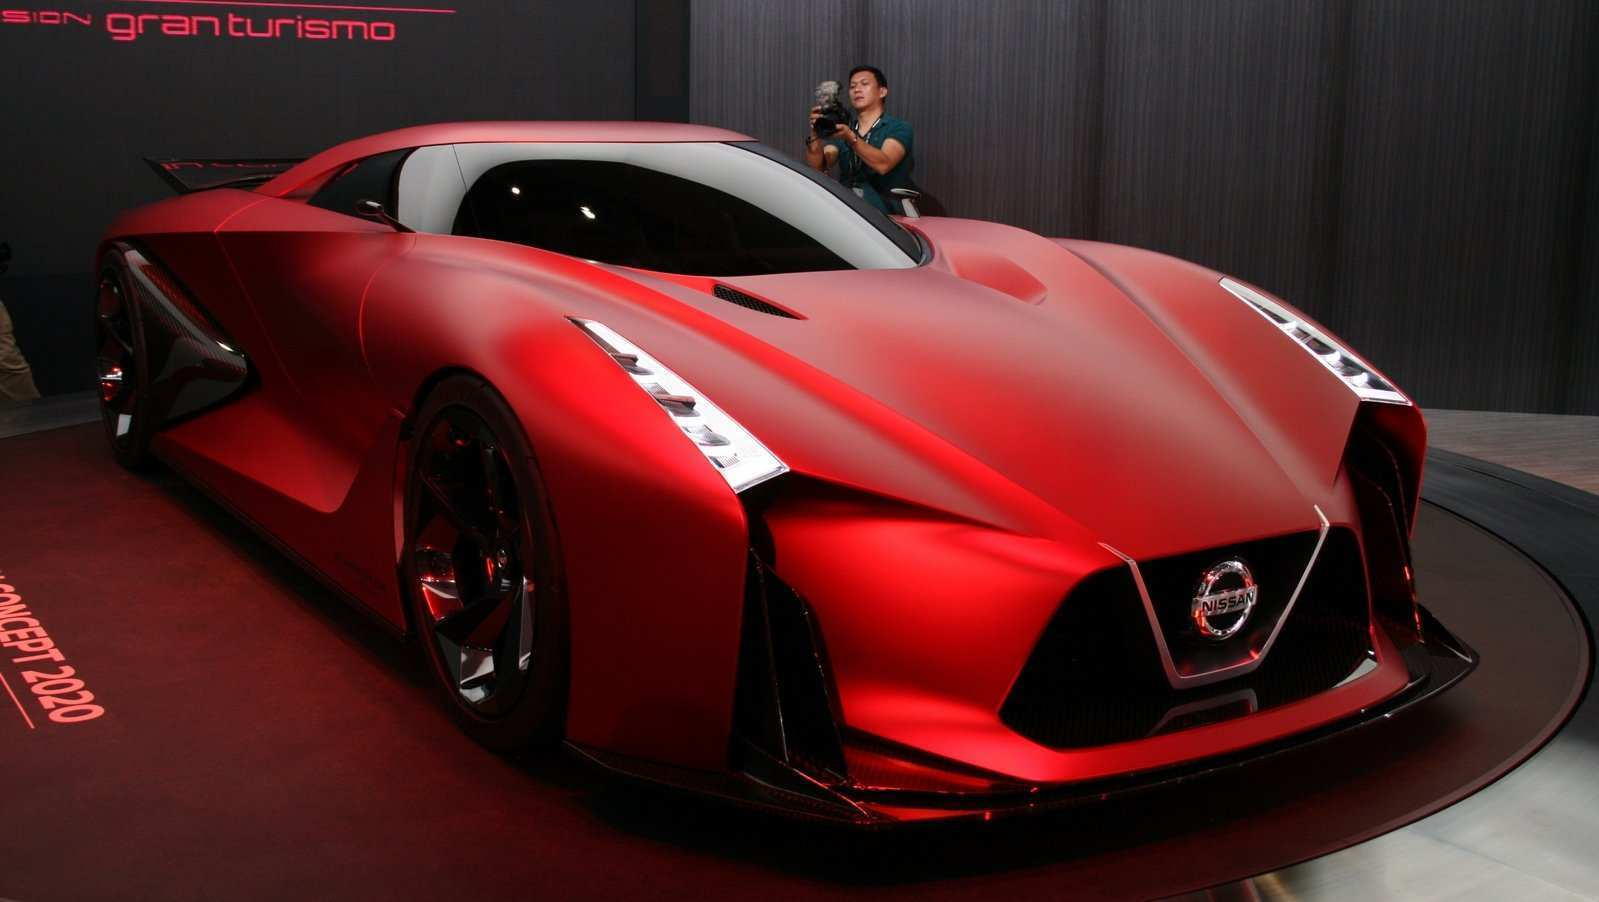 21 Concept of 2020 Nissan Gtr 0 60 Ratings by 2020 Nissan Gtr 0 60